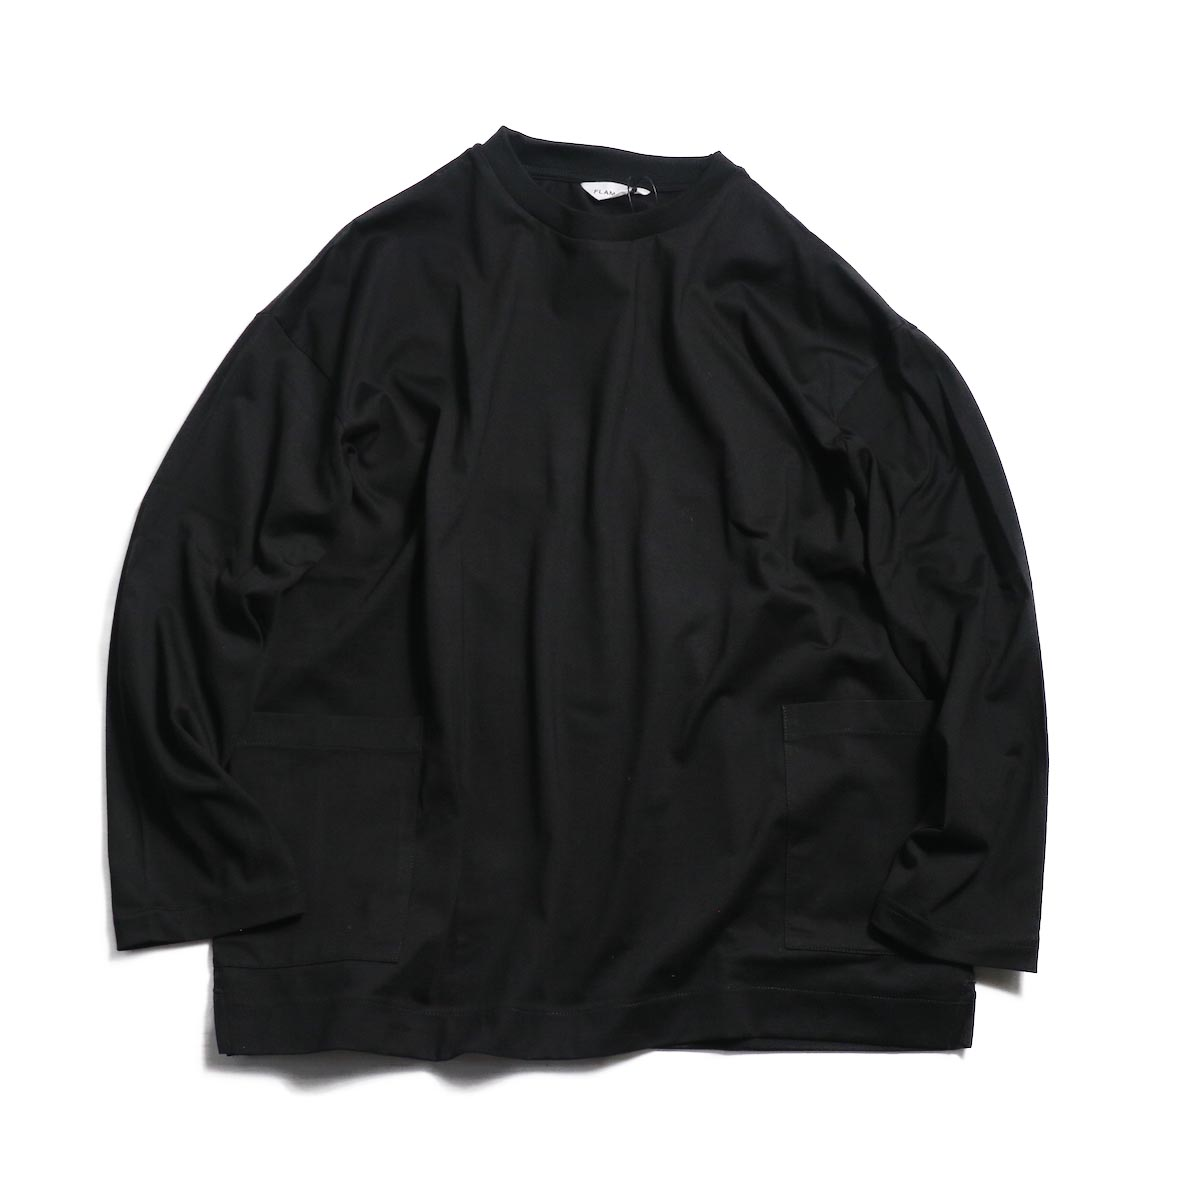 FLAMAND / LS NORTH SEA SMOCK -NOIR